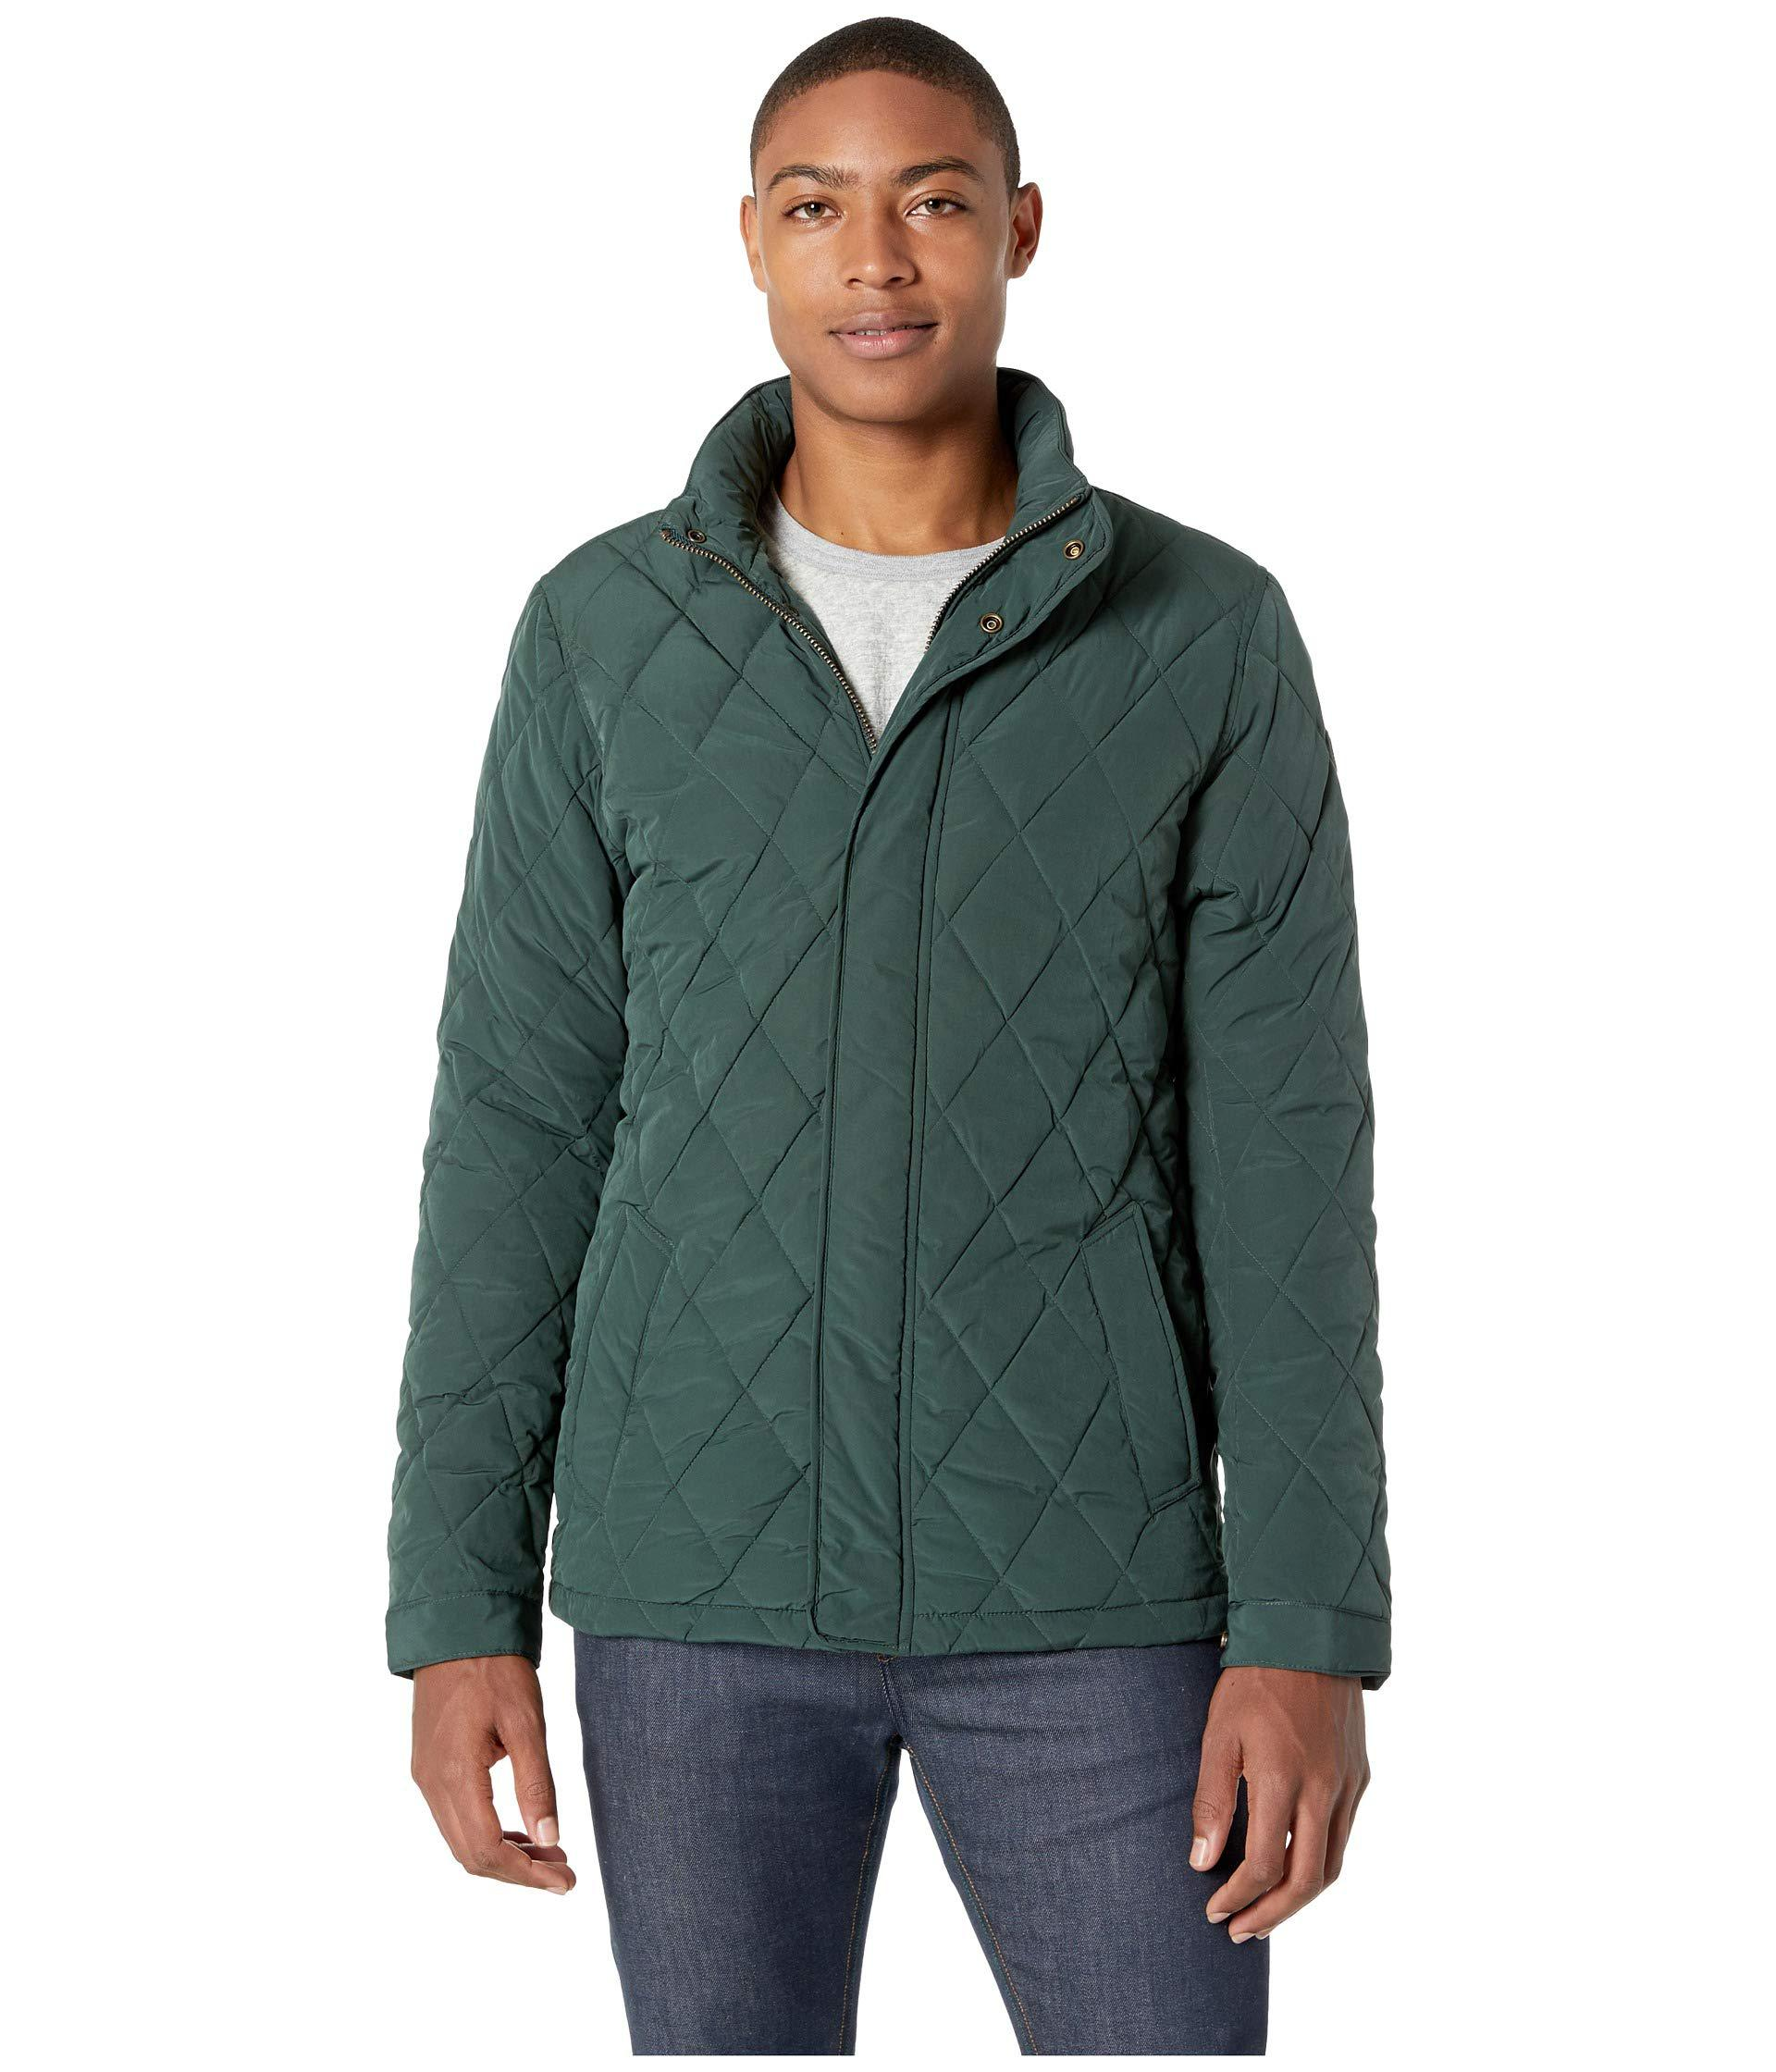 Lyst Lightweight Scotch amp; Quilted spruce Jacket Classic Soda rxZAqwrI